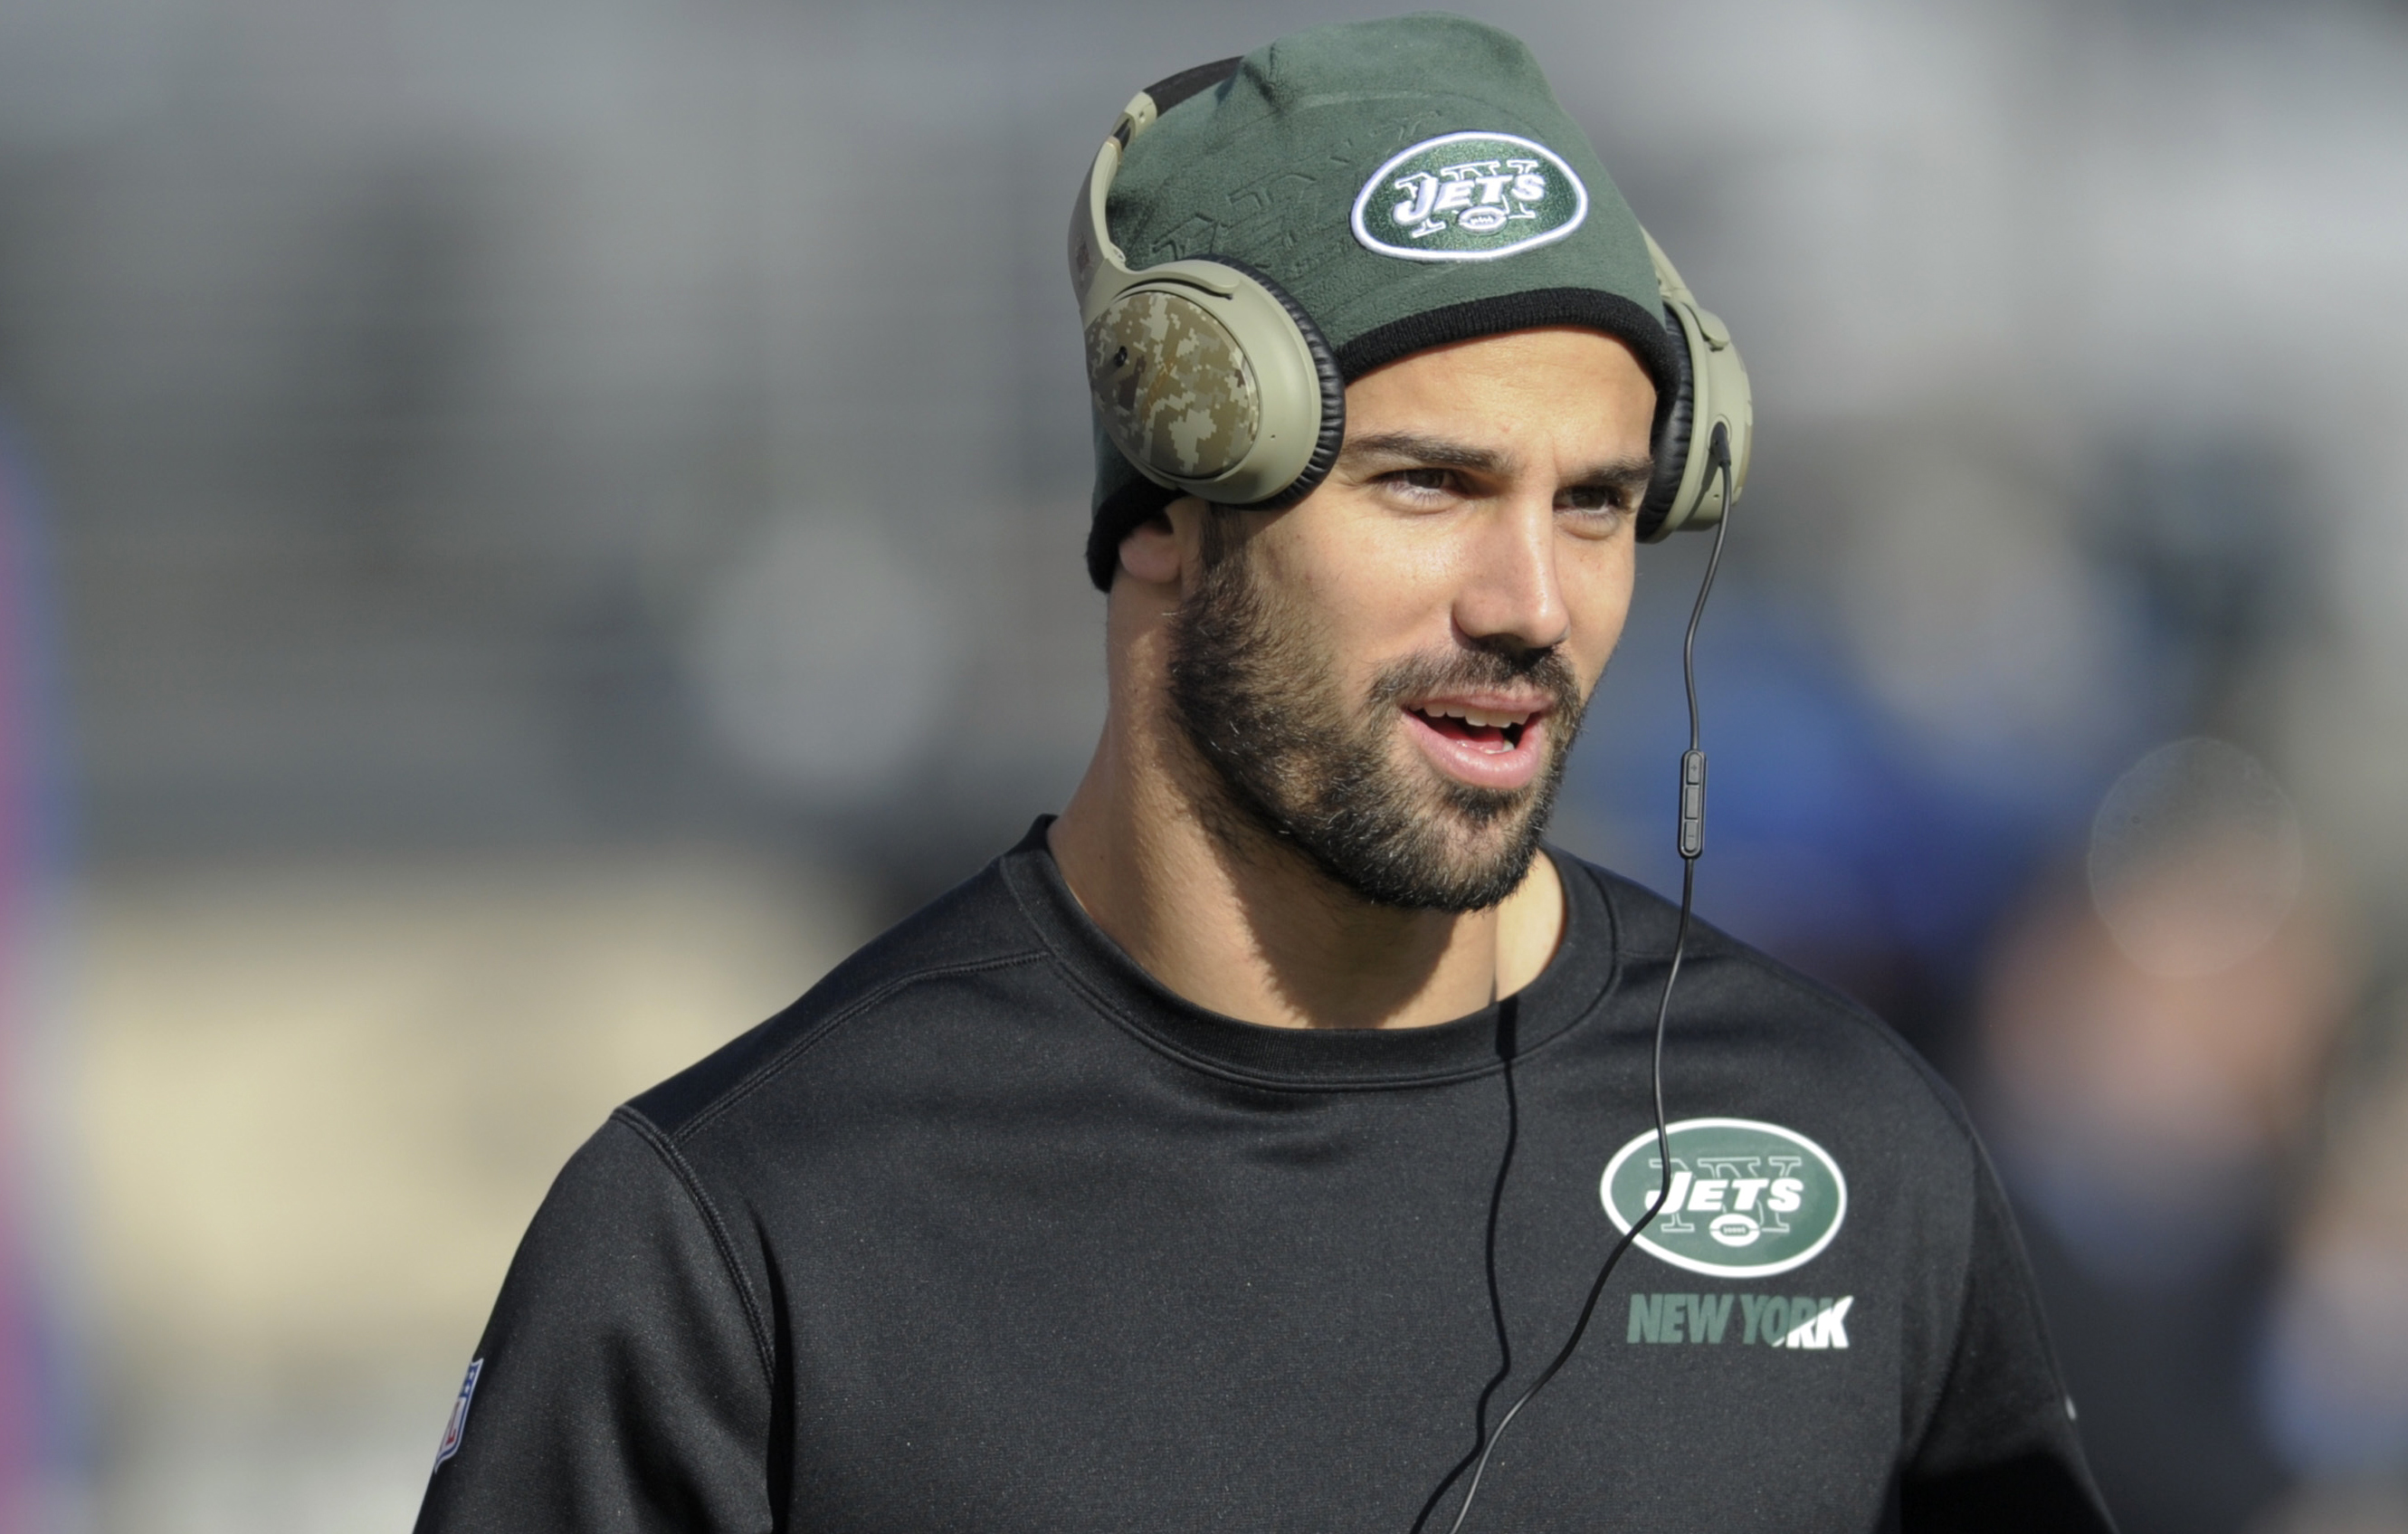 FILE - In this Dec. 6, 2015, file photo, New York Jets wide receiver Eric Decker warms up before an NFL football game against the New York Giants in East Rutherford. Decker has a partially torn rotator cuff that will sideline him for the team's game again